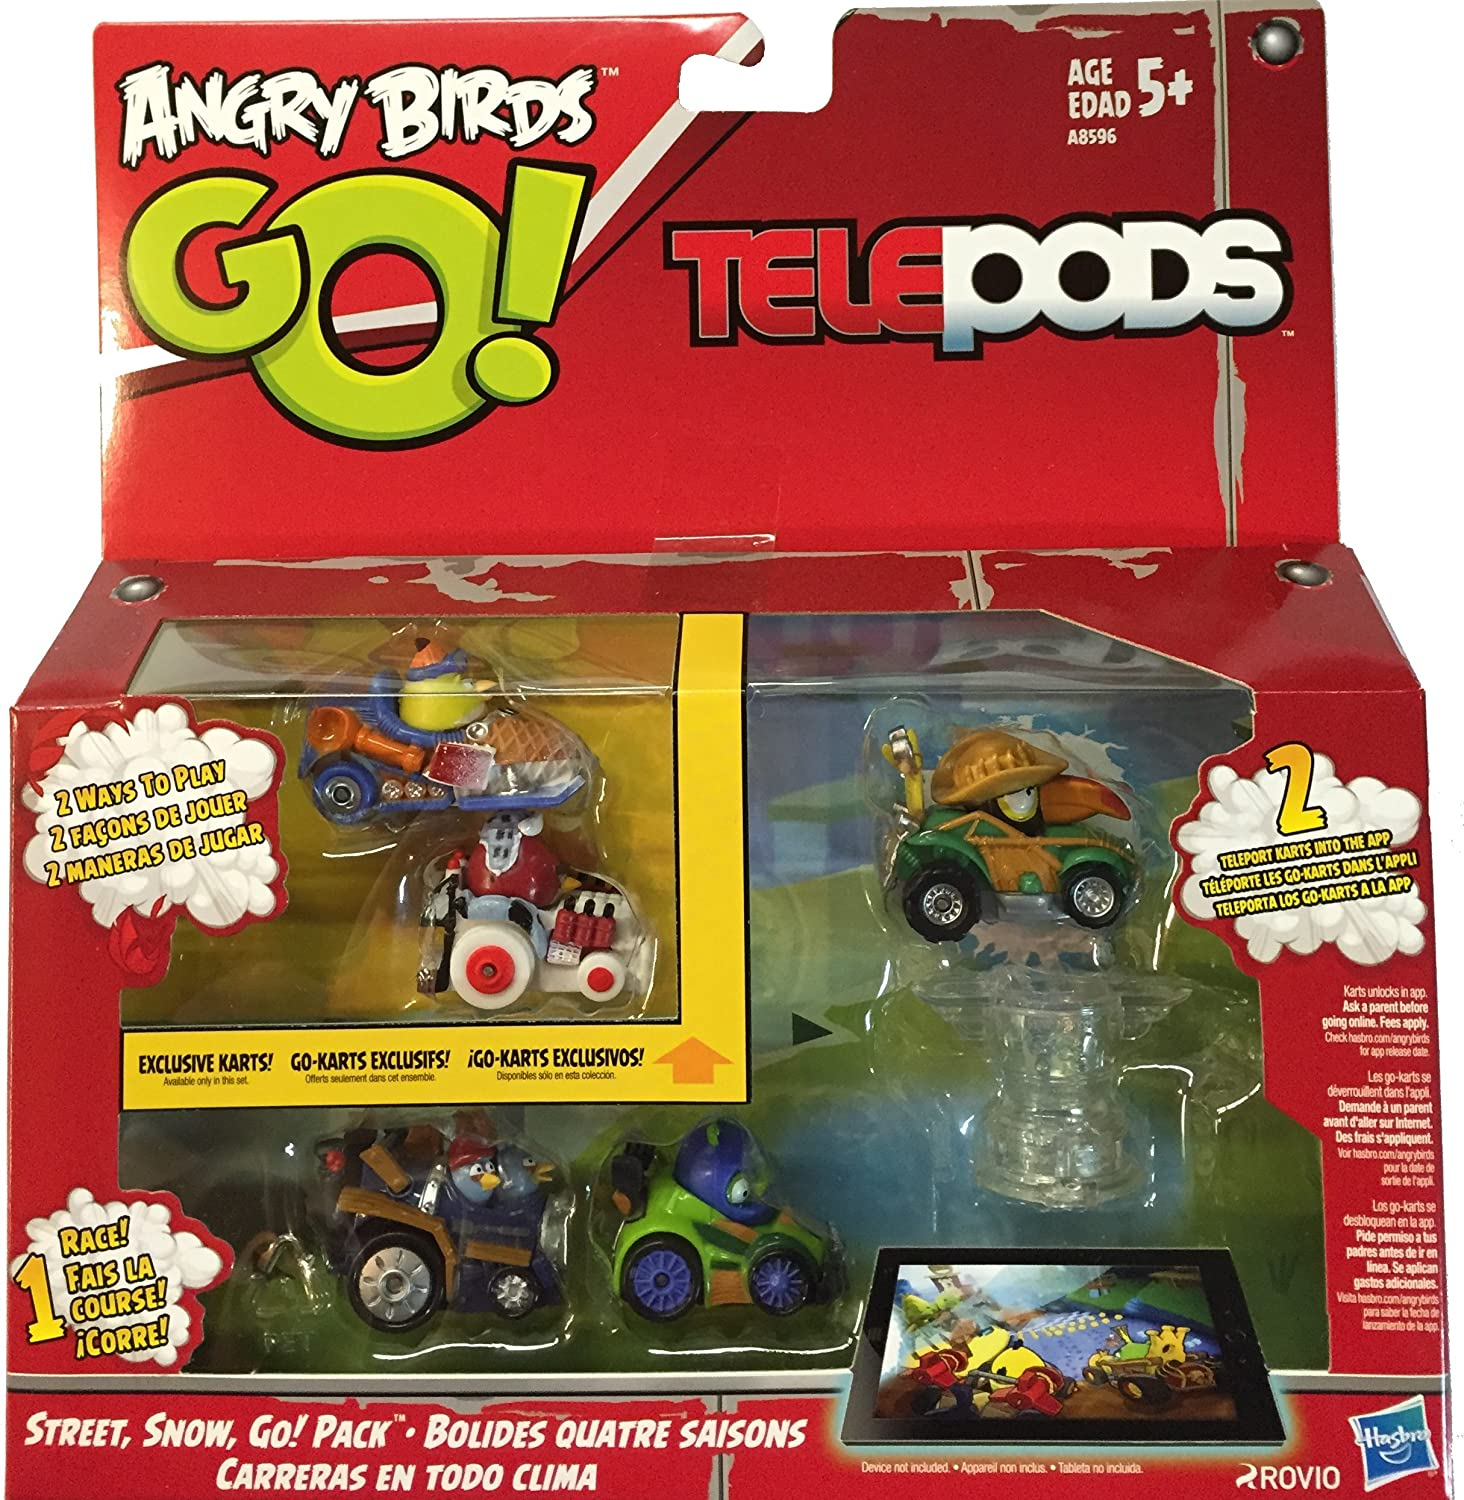 Angry Birds Go Toys : Angry birds go toys bing images